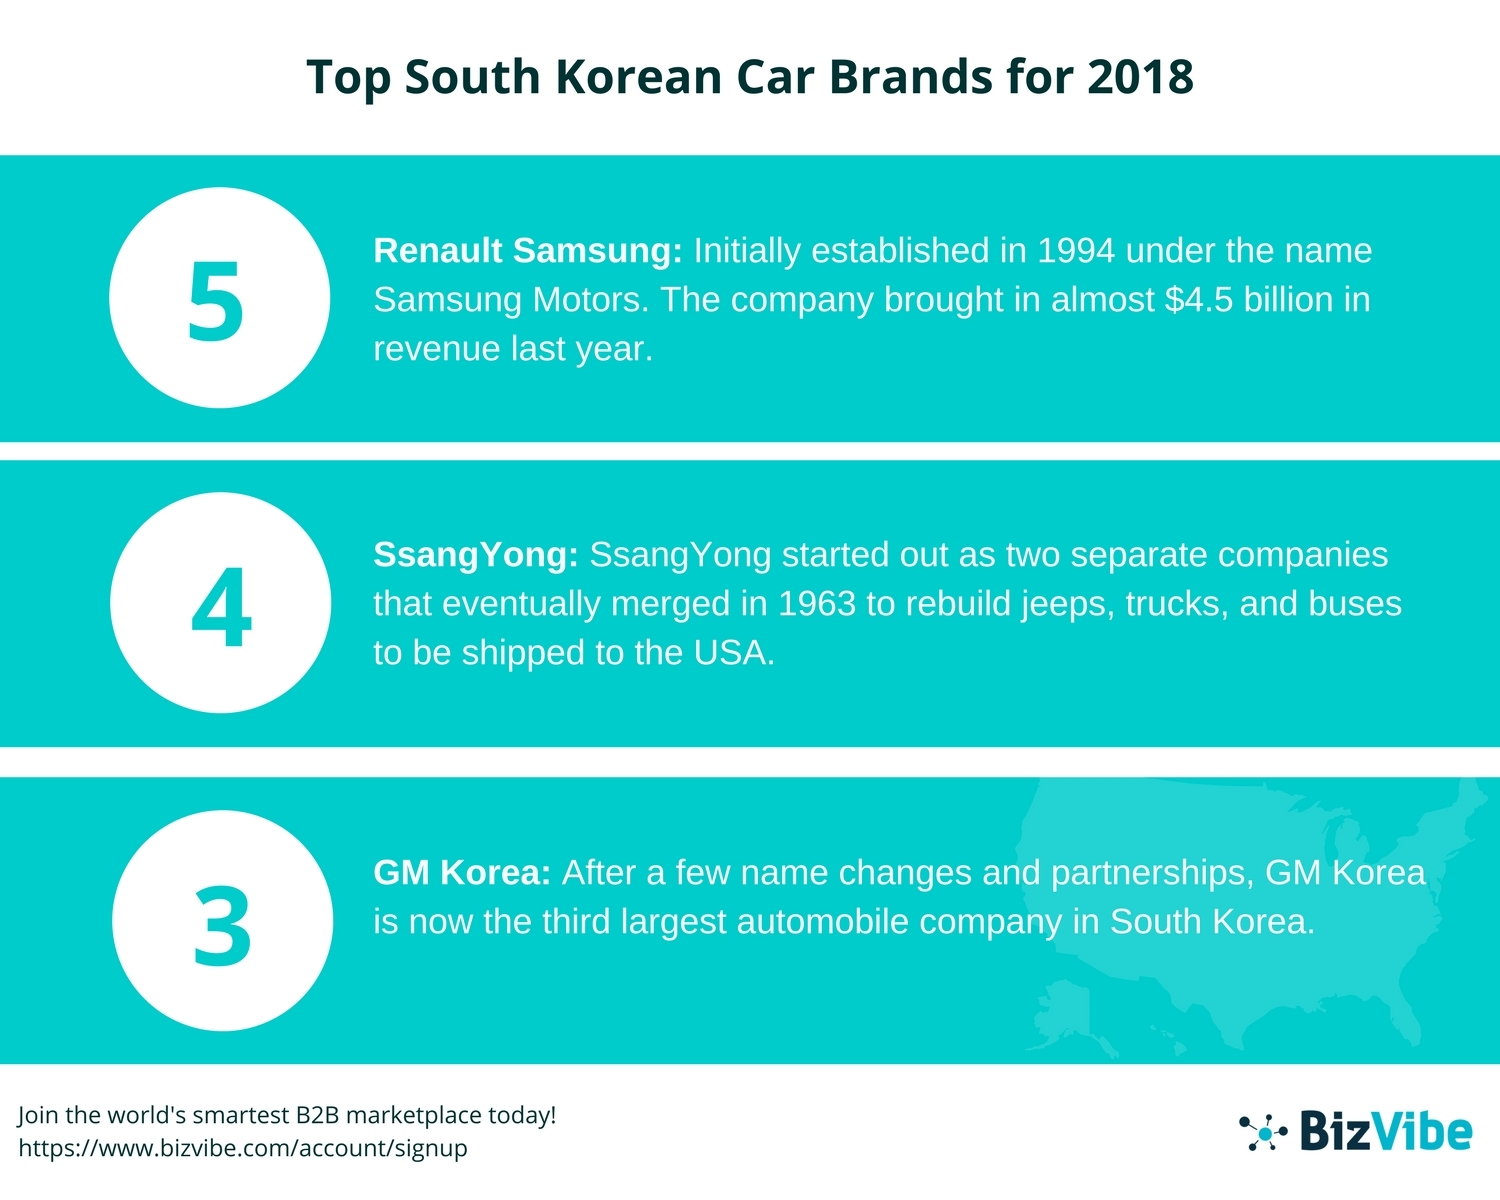 Bizvibe Announces Their List Of The Top 5 South Korean Car Brands